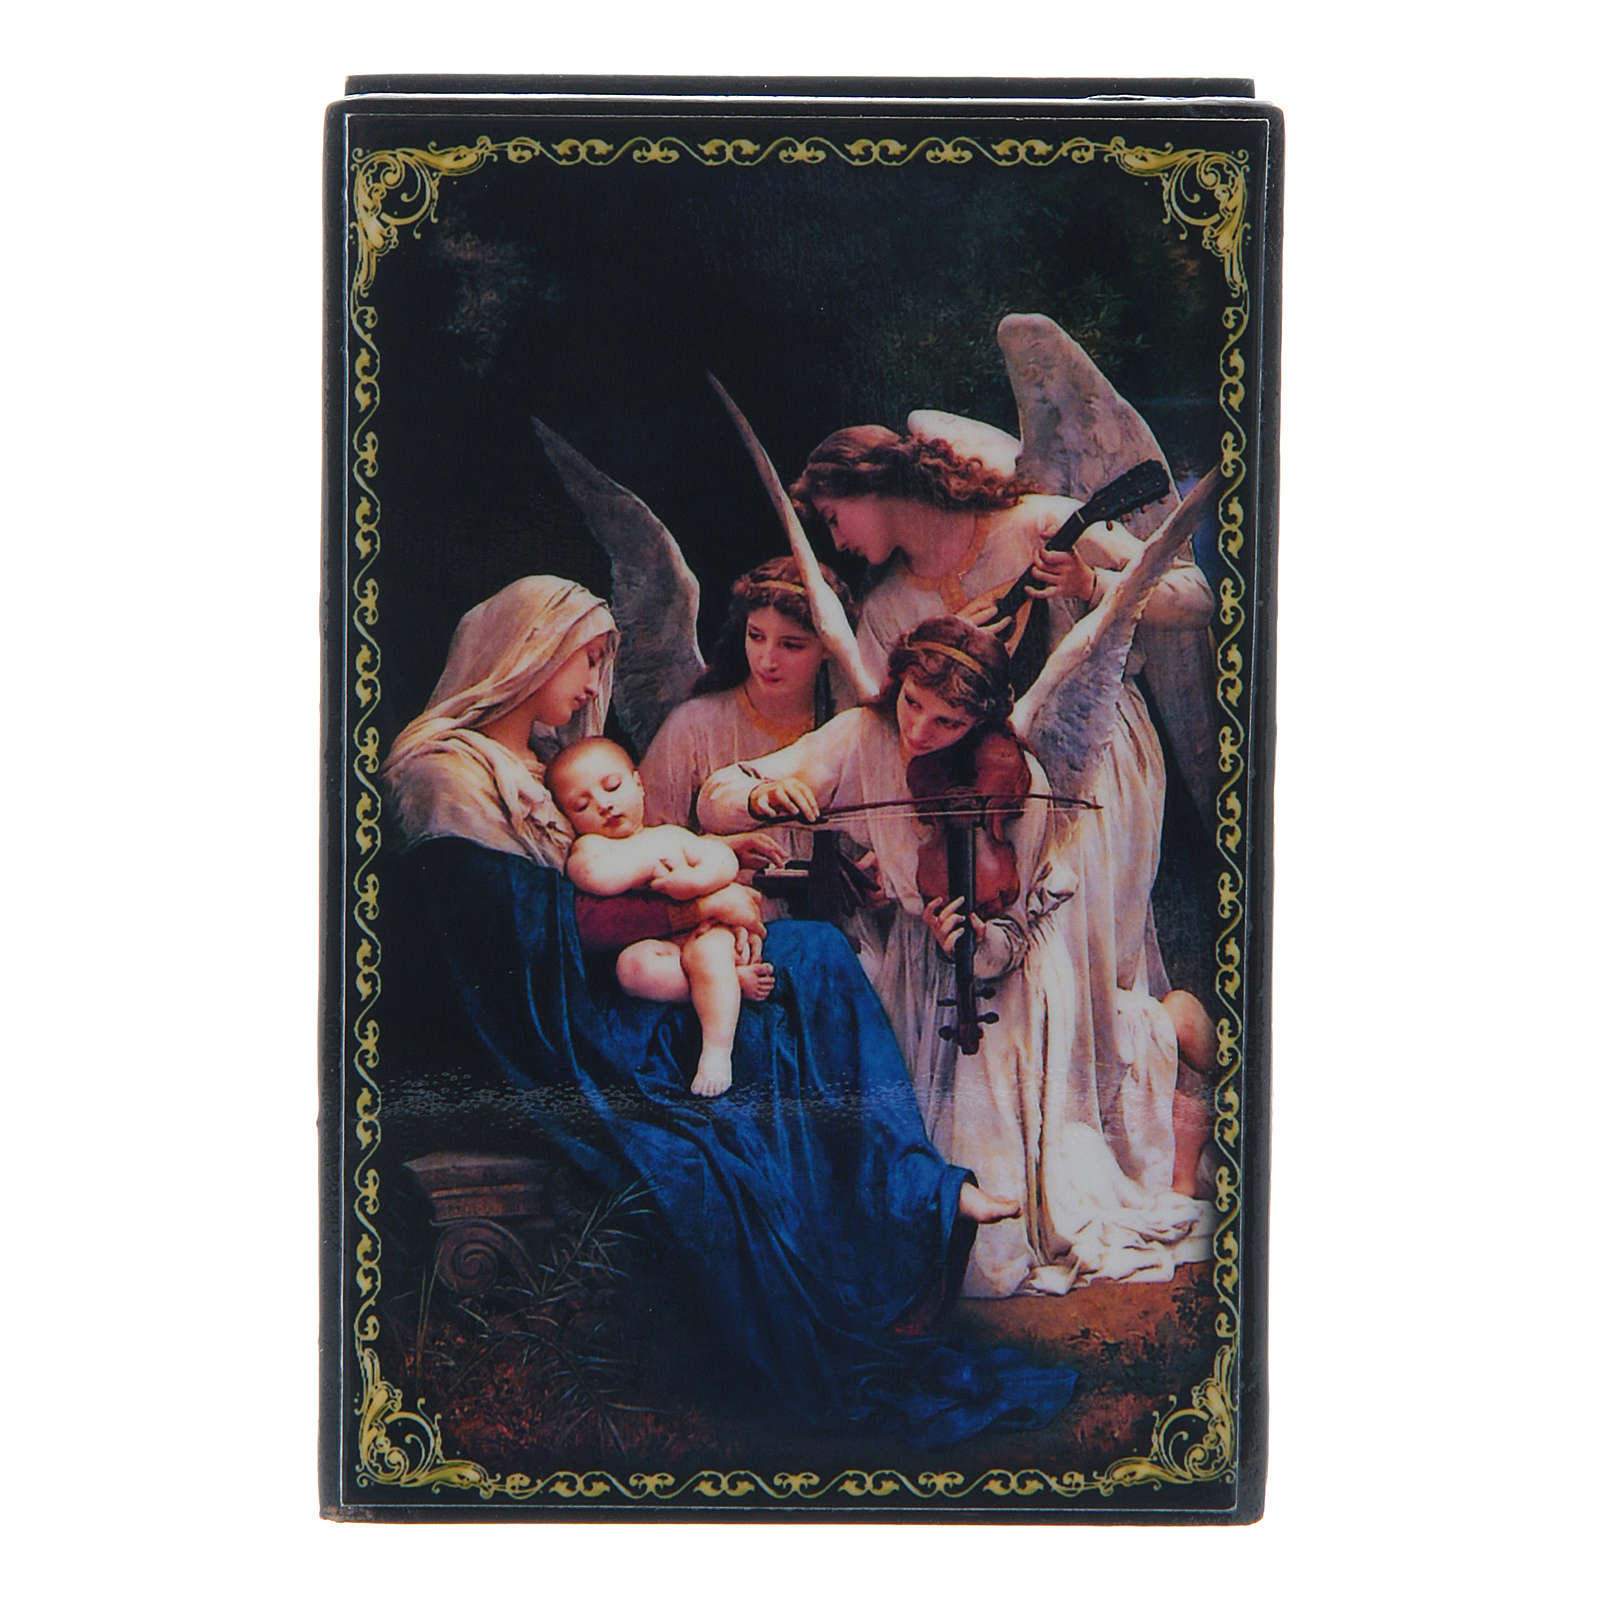 Russian lacquer box, Song of the Angels 9x6 cm 4